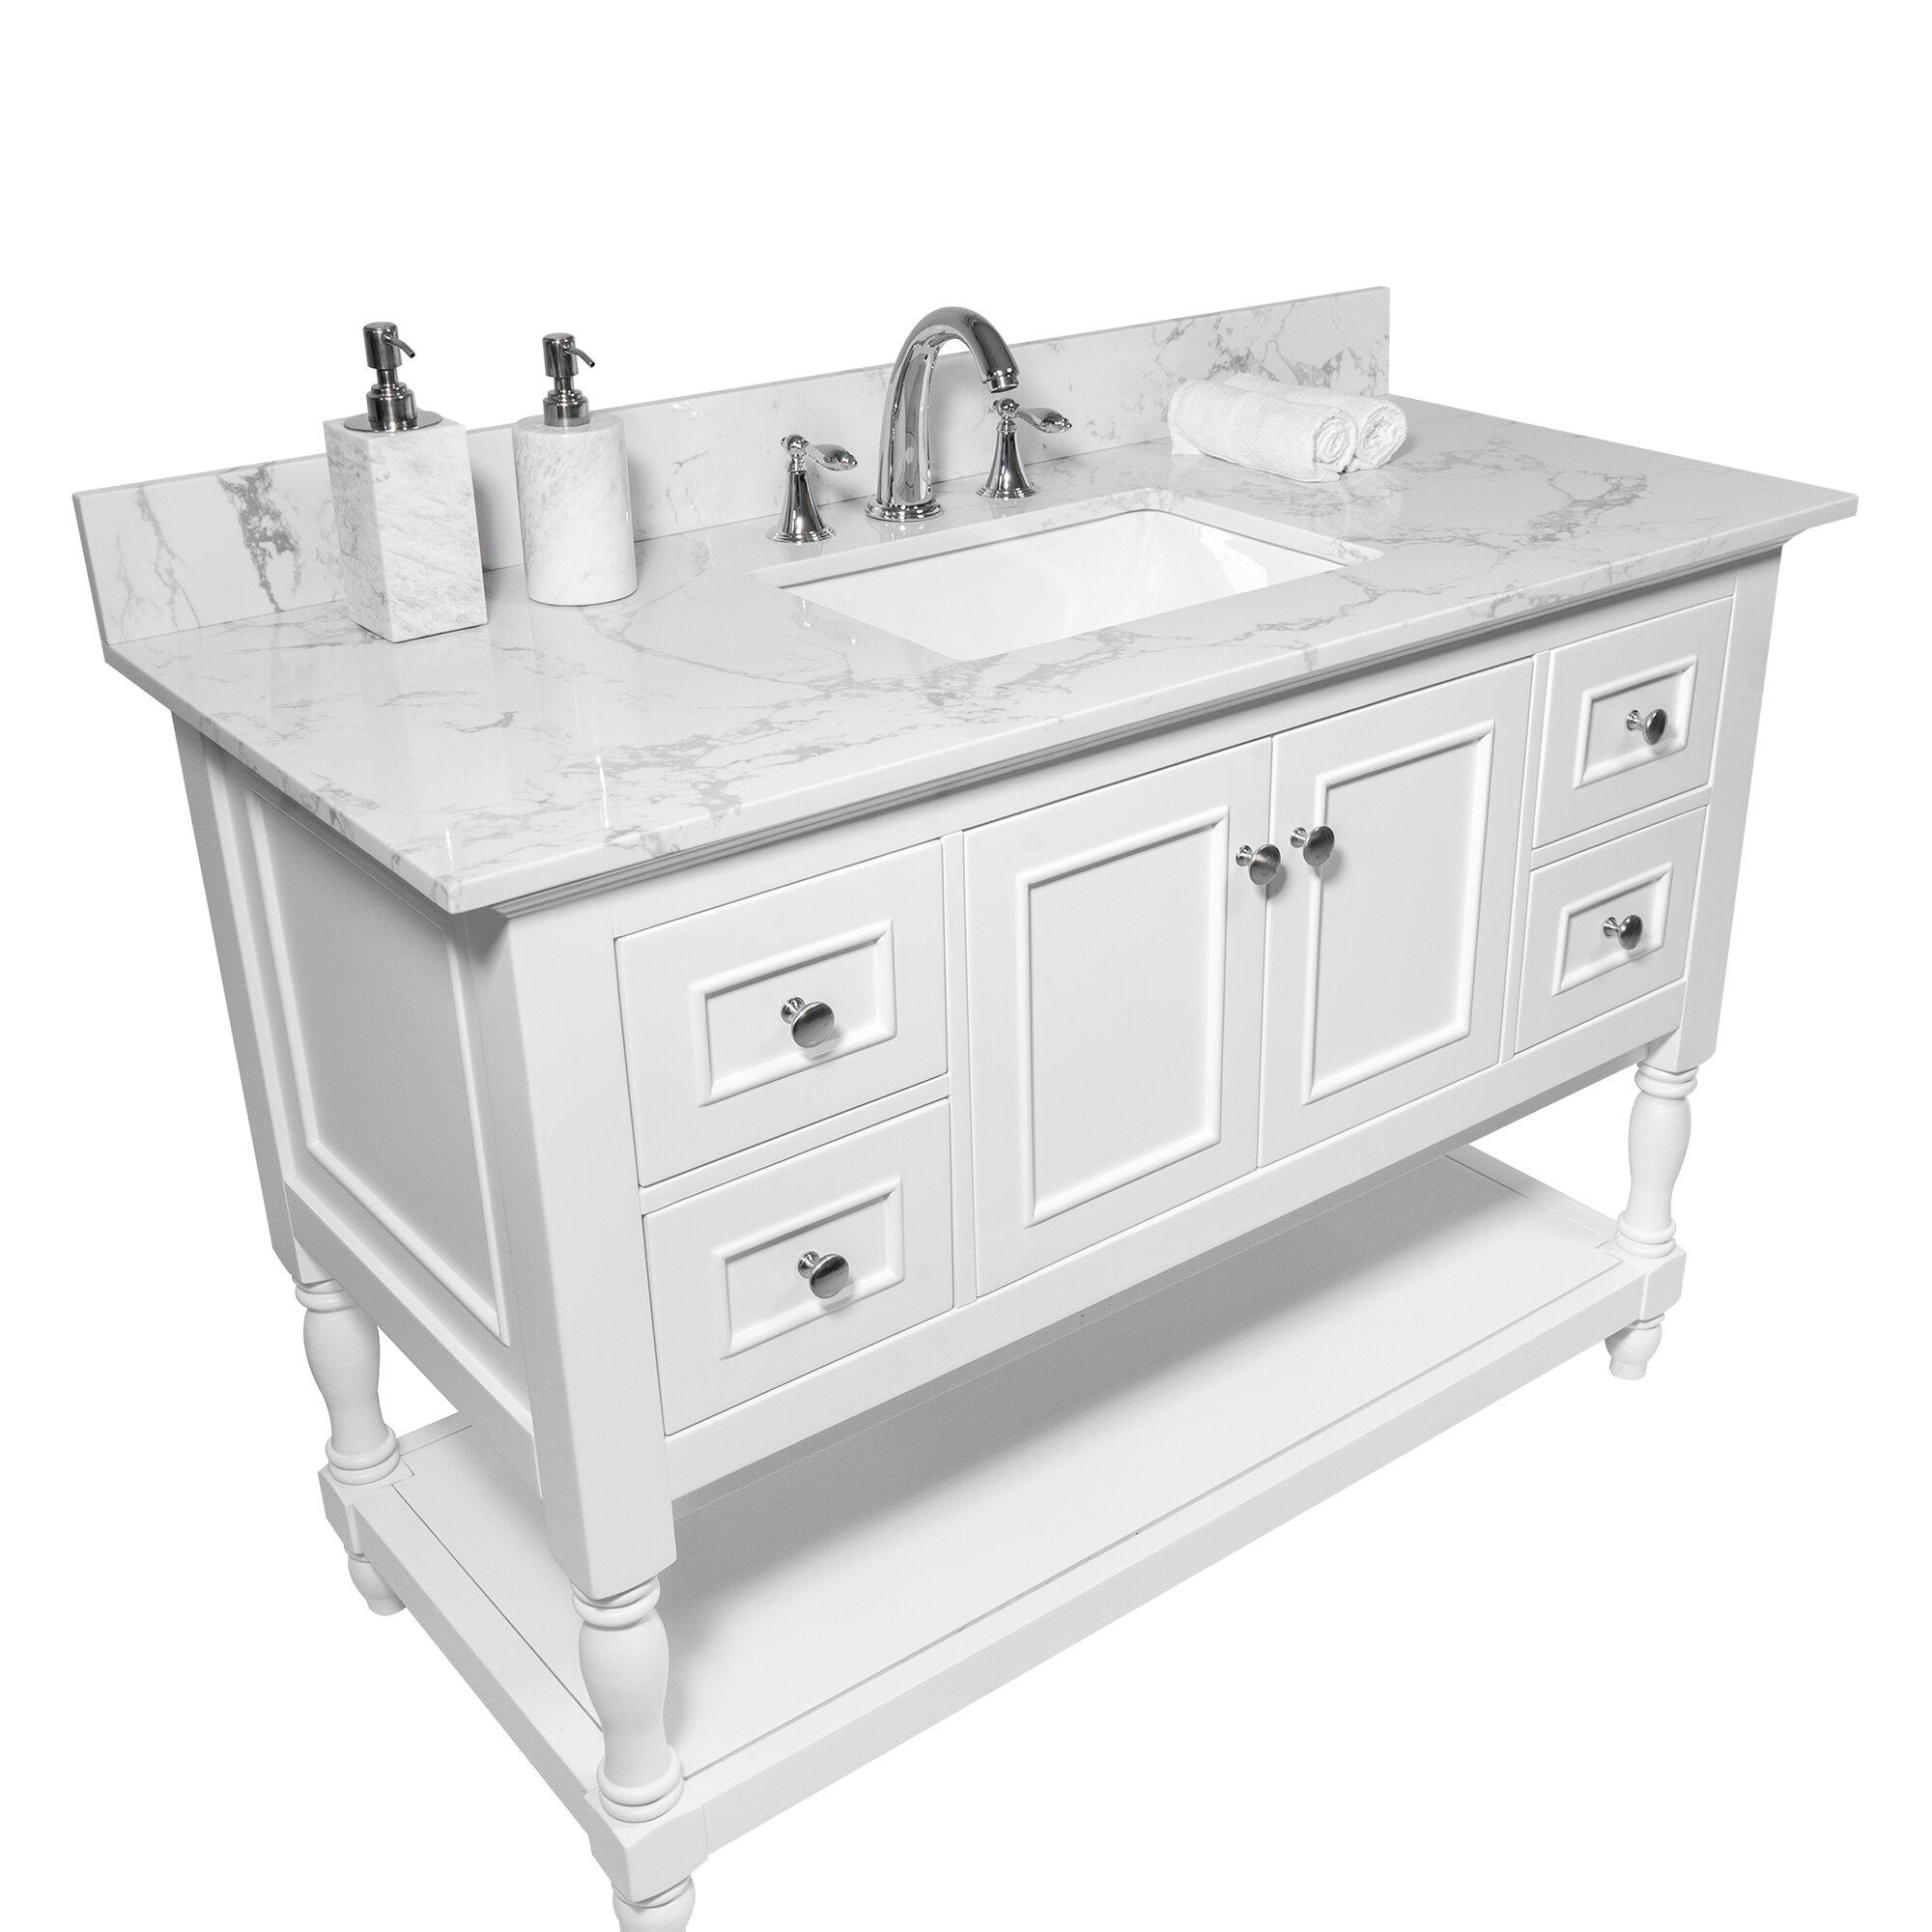 Watqen 43 Single Bathroom Vanity Top In White With Sink Wayfair